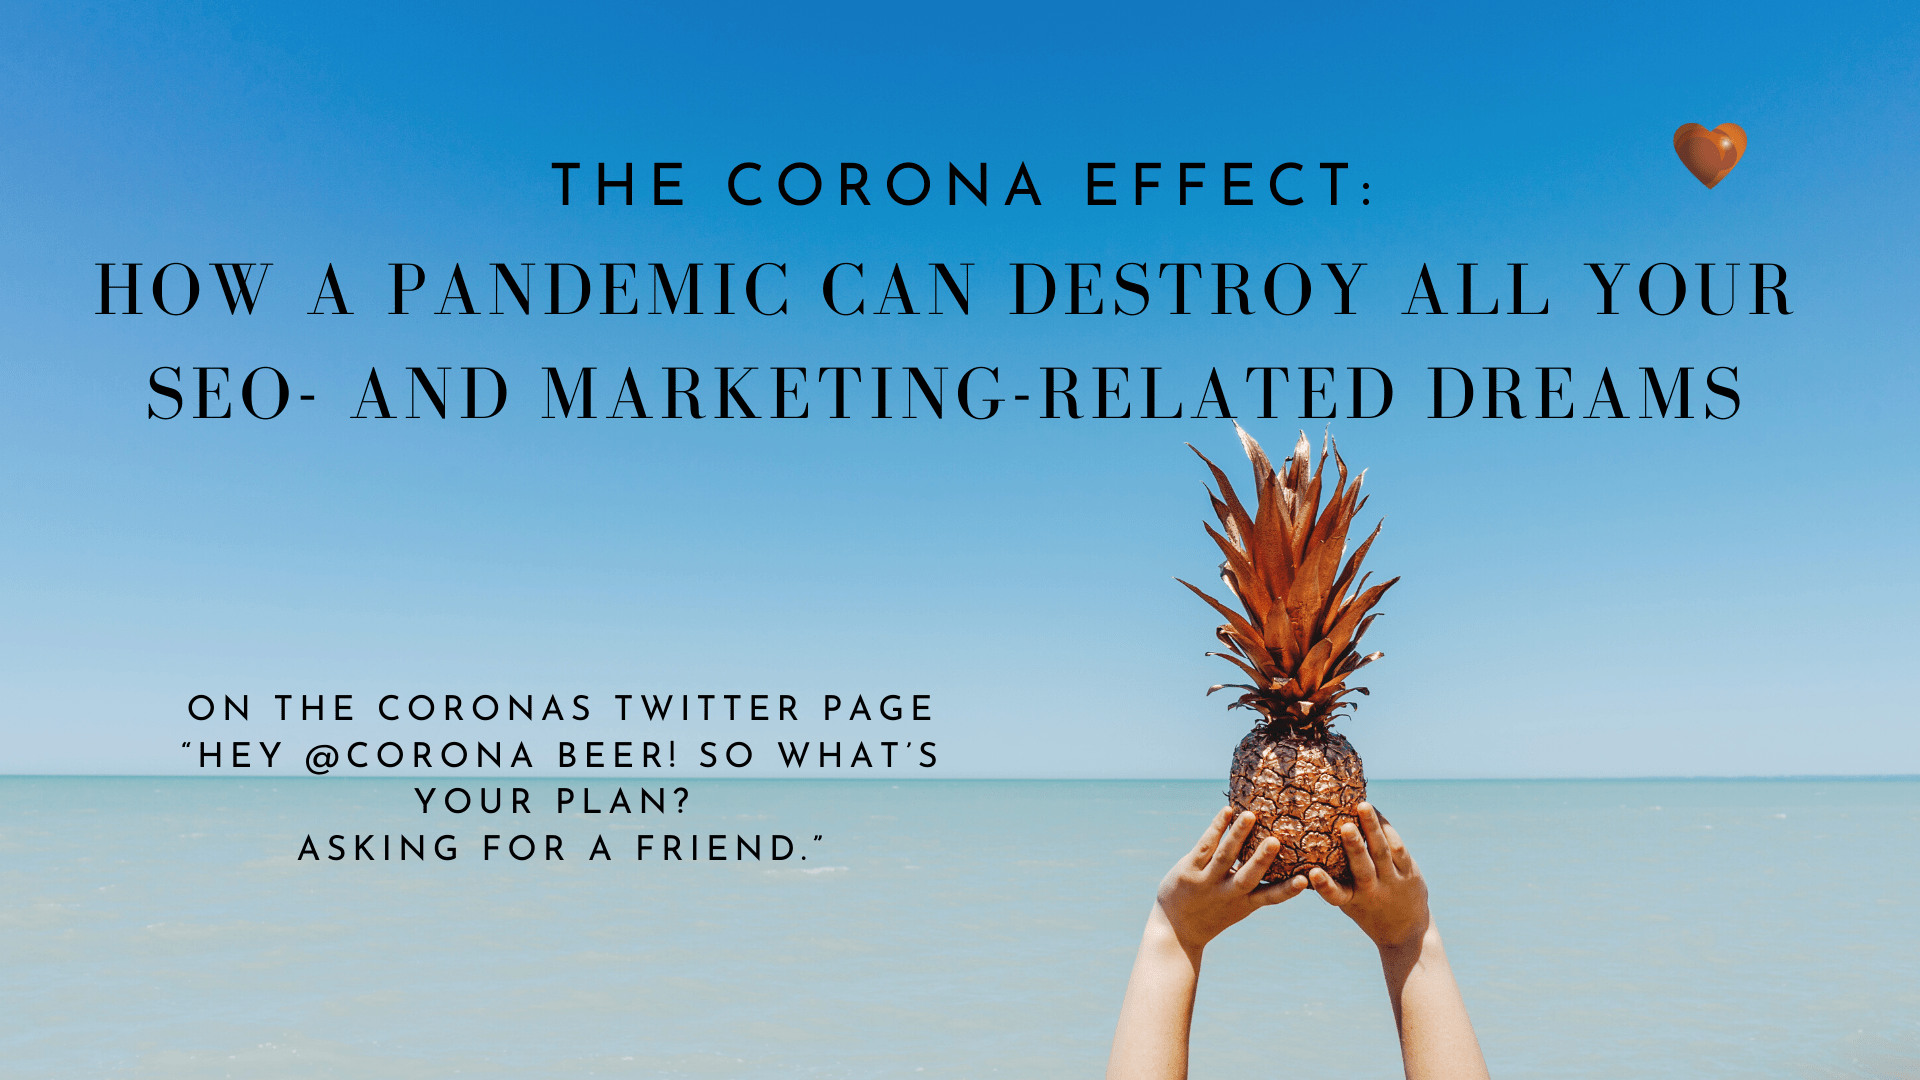 The Corona Effect_ How a Pandemic Can Destroy All Your SEO- and Marketing-Related Dreams